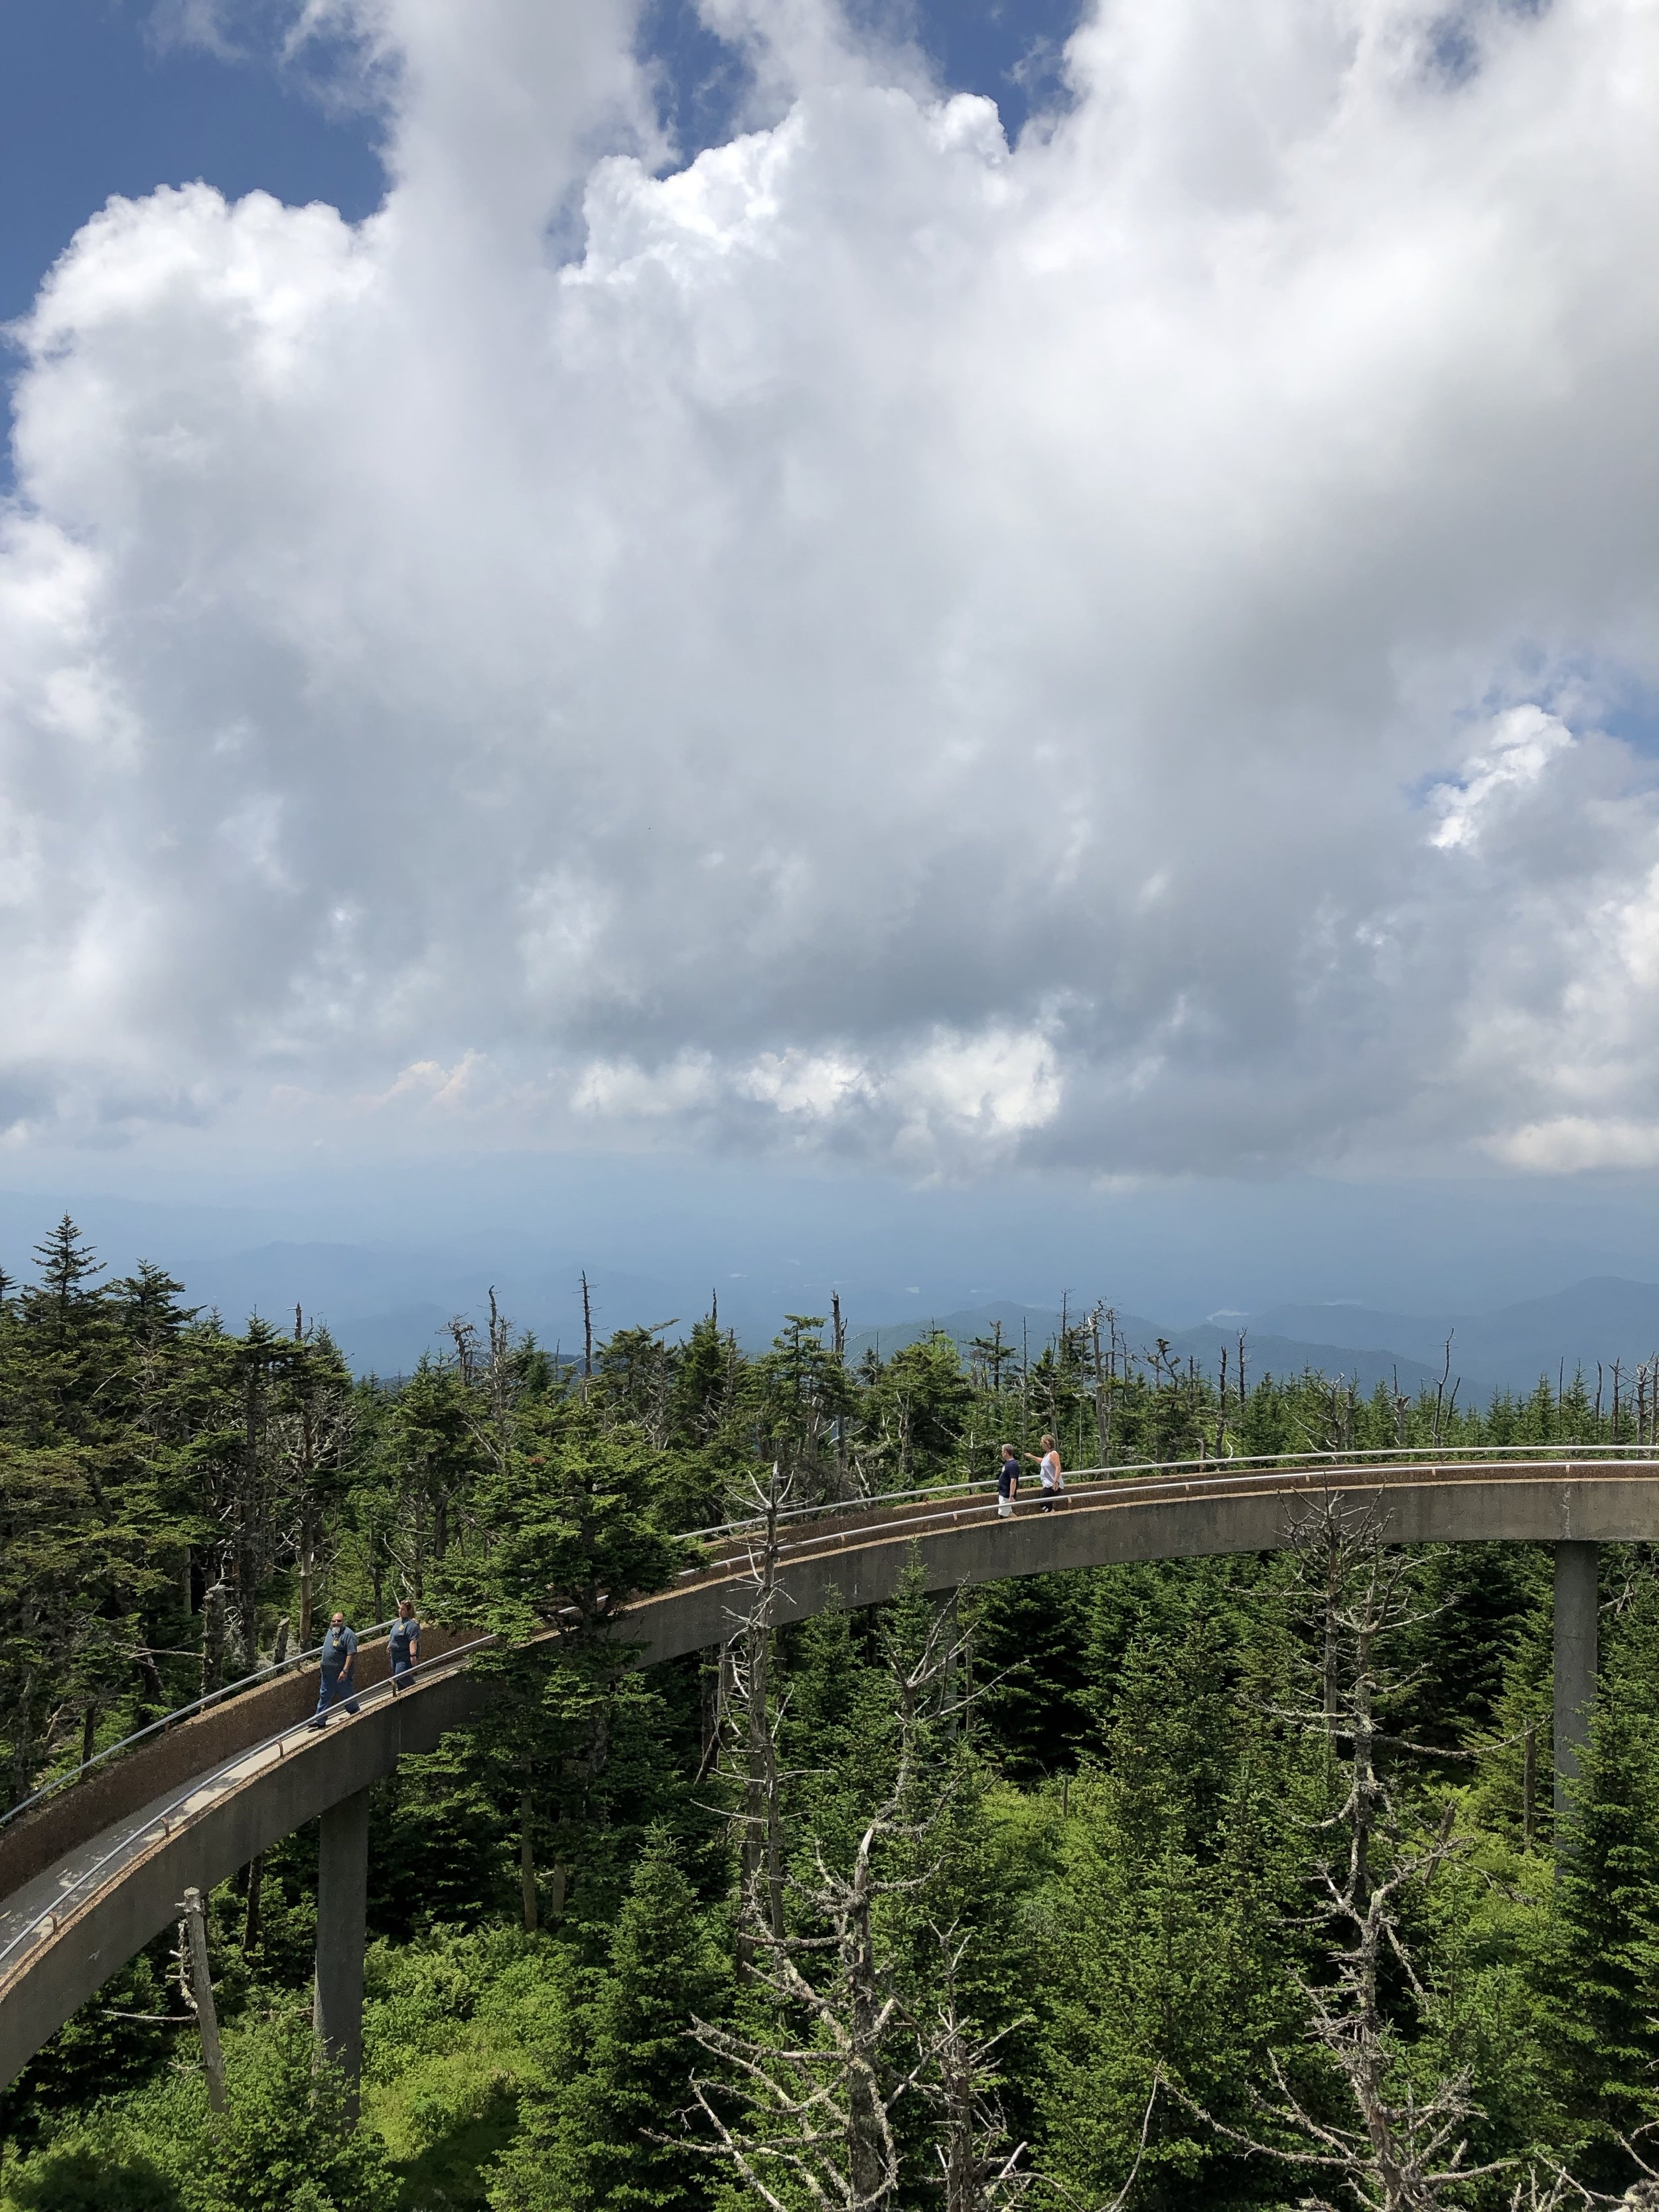 We hiked up to Clingman's Dome. From the parking lot to the base of this cement ramp was only half a mile, but seriously steep. We saw a few families heading back down before making it to the top.